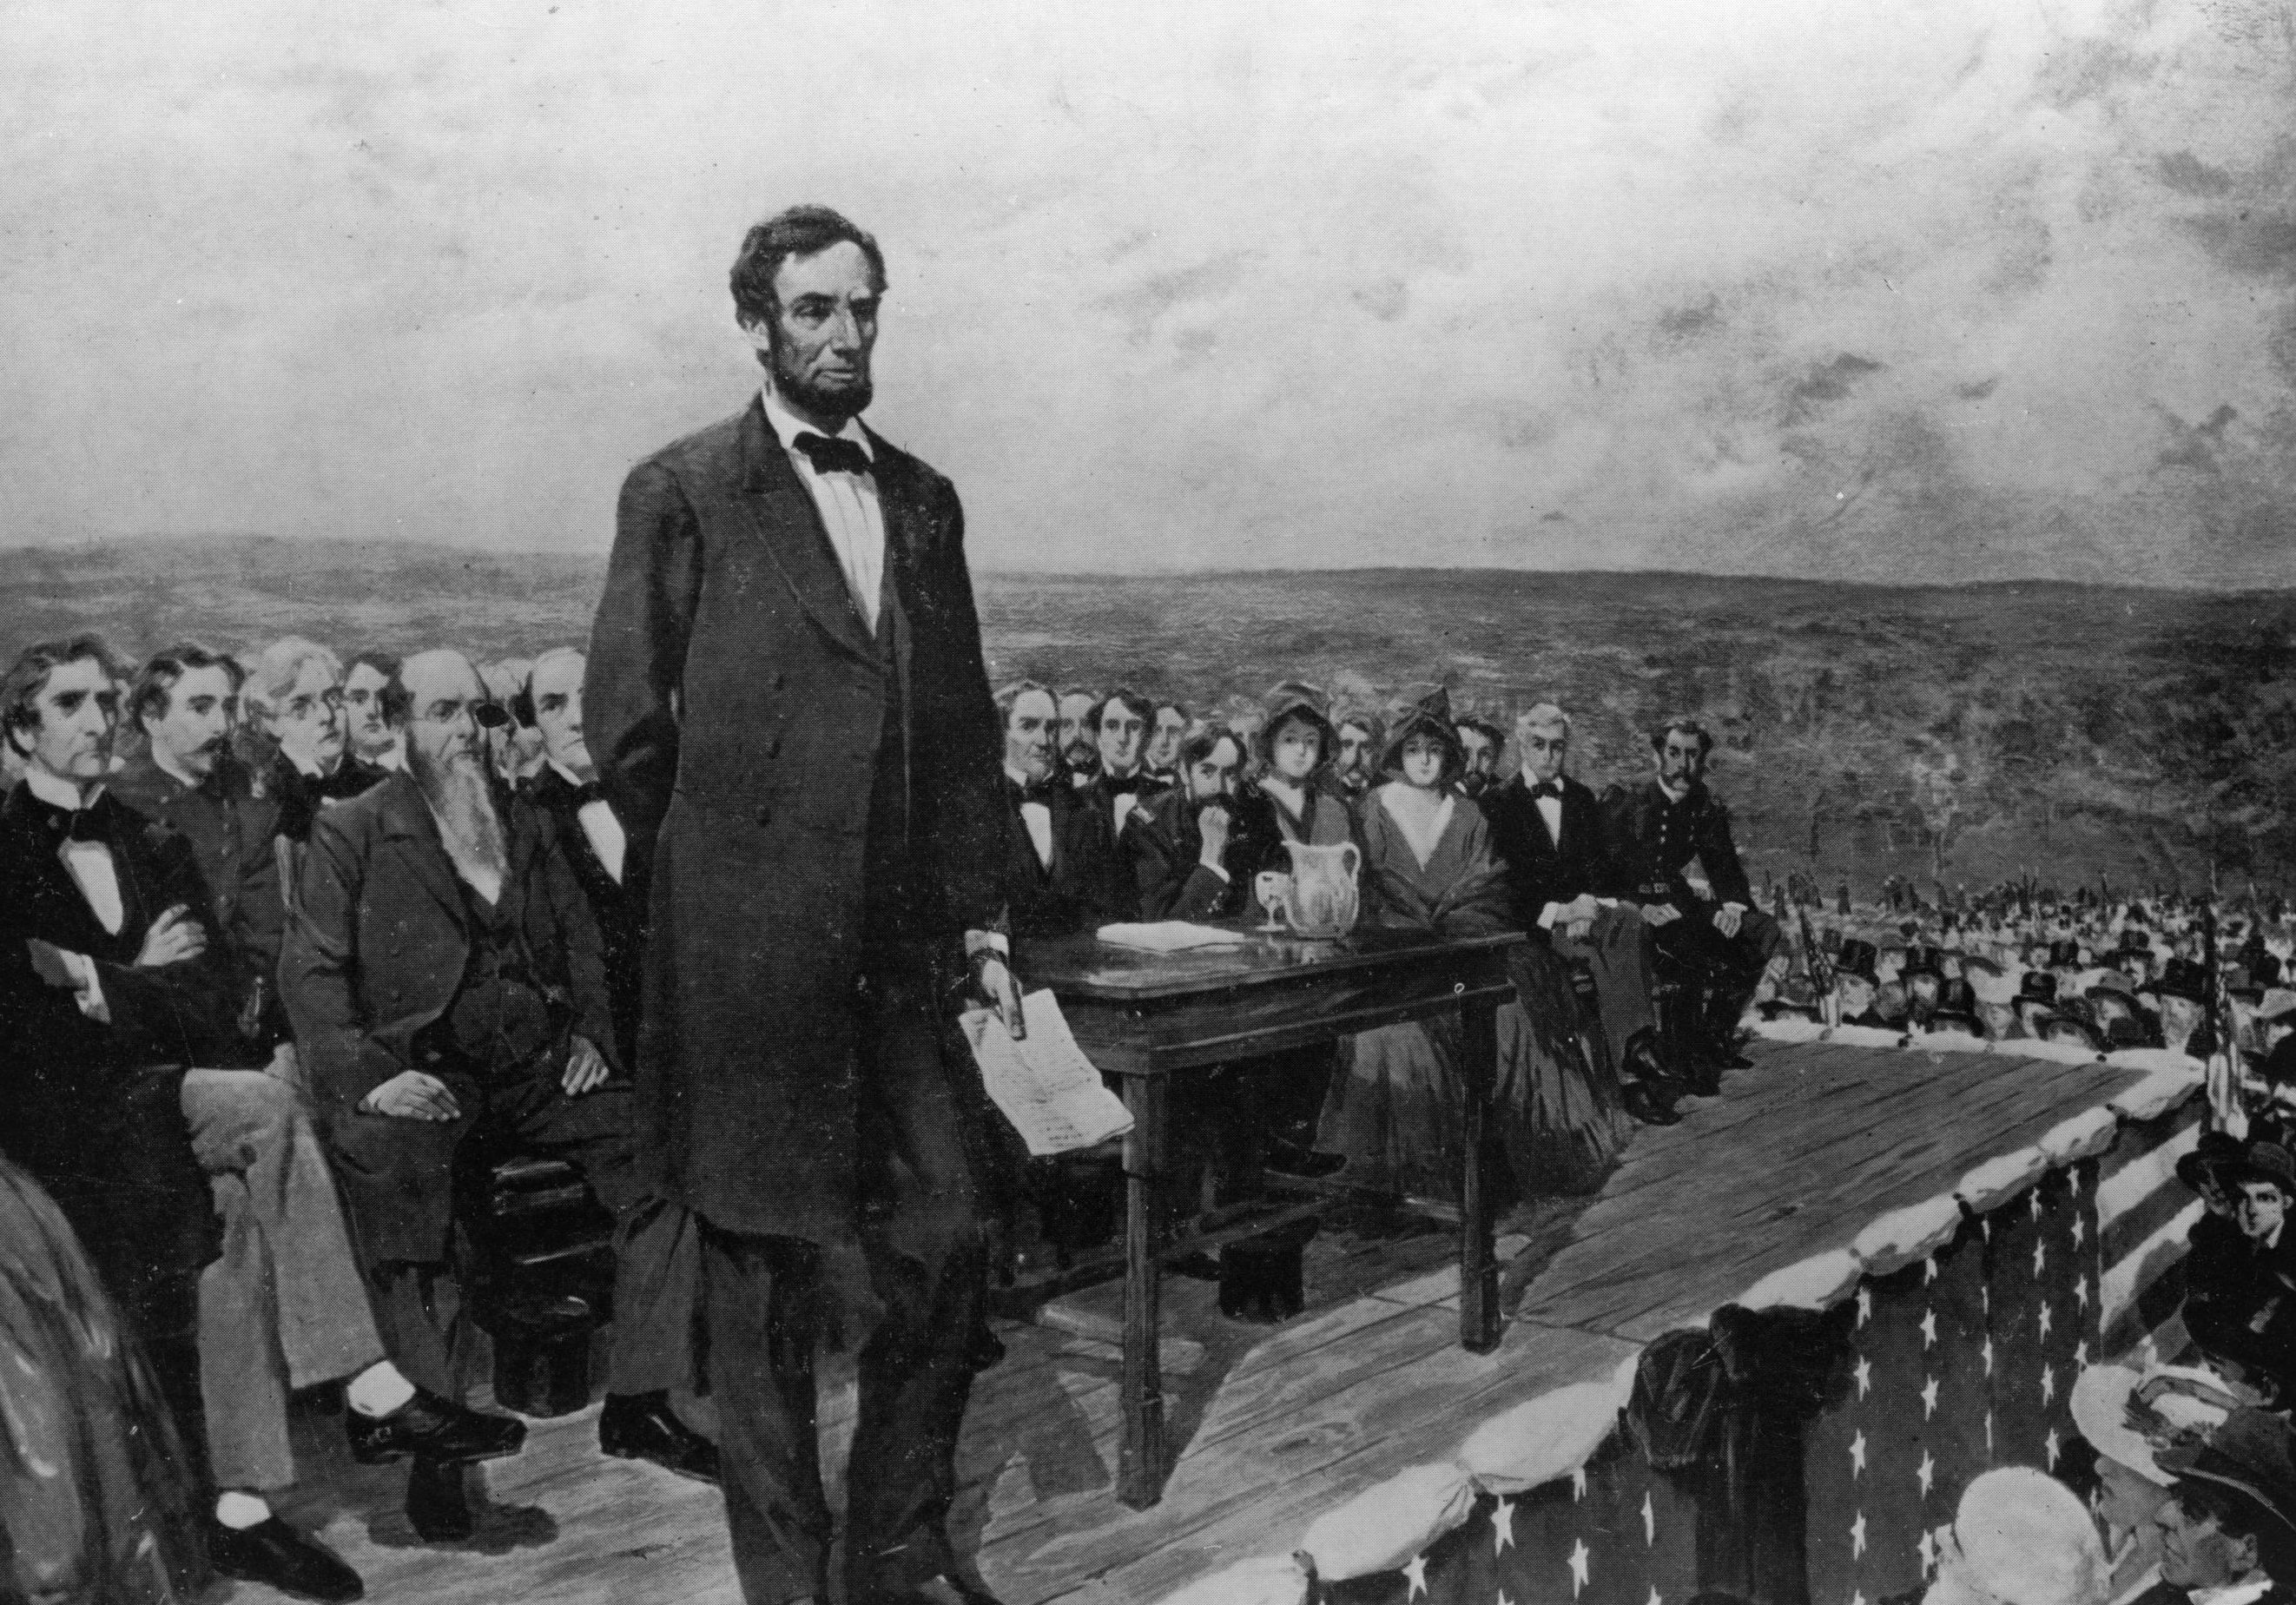 abraham lincoln s seond inaugural speech example Much more concise and philosophical than his first inaugural address, this second inaugural came at a critical time in the civil war the speech is somber even as it anticipates the successful ending of the war that had ravaged the land for four years then, while all dreaded the impending war, and.